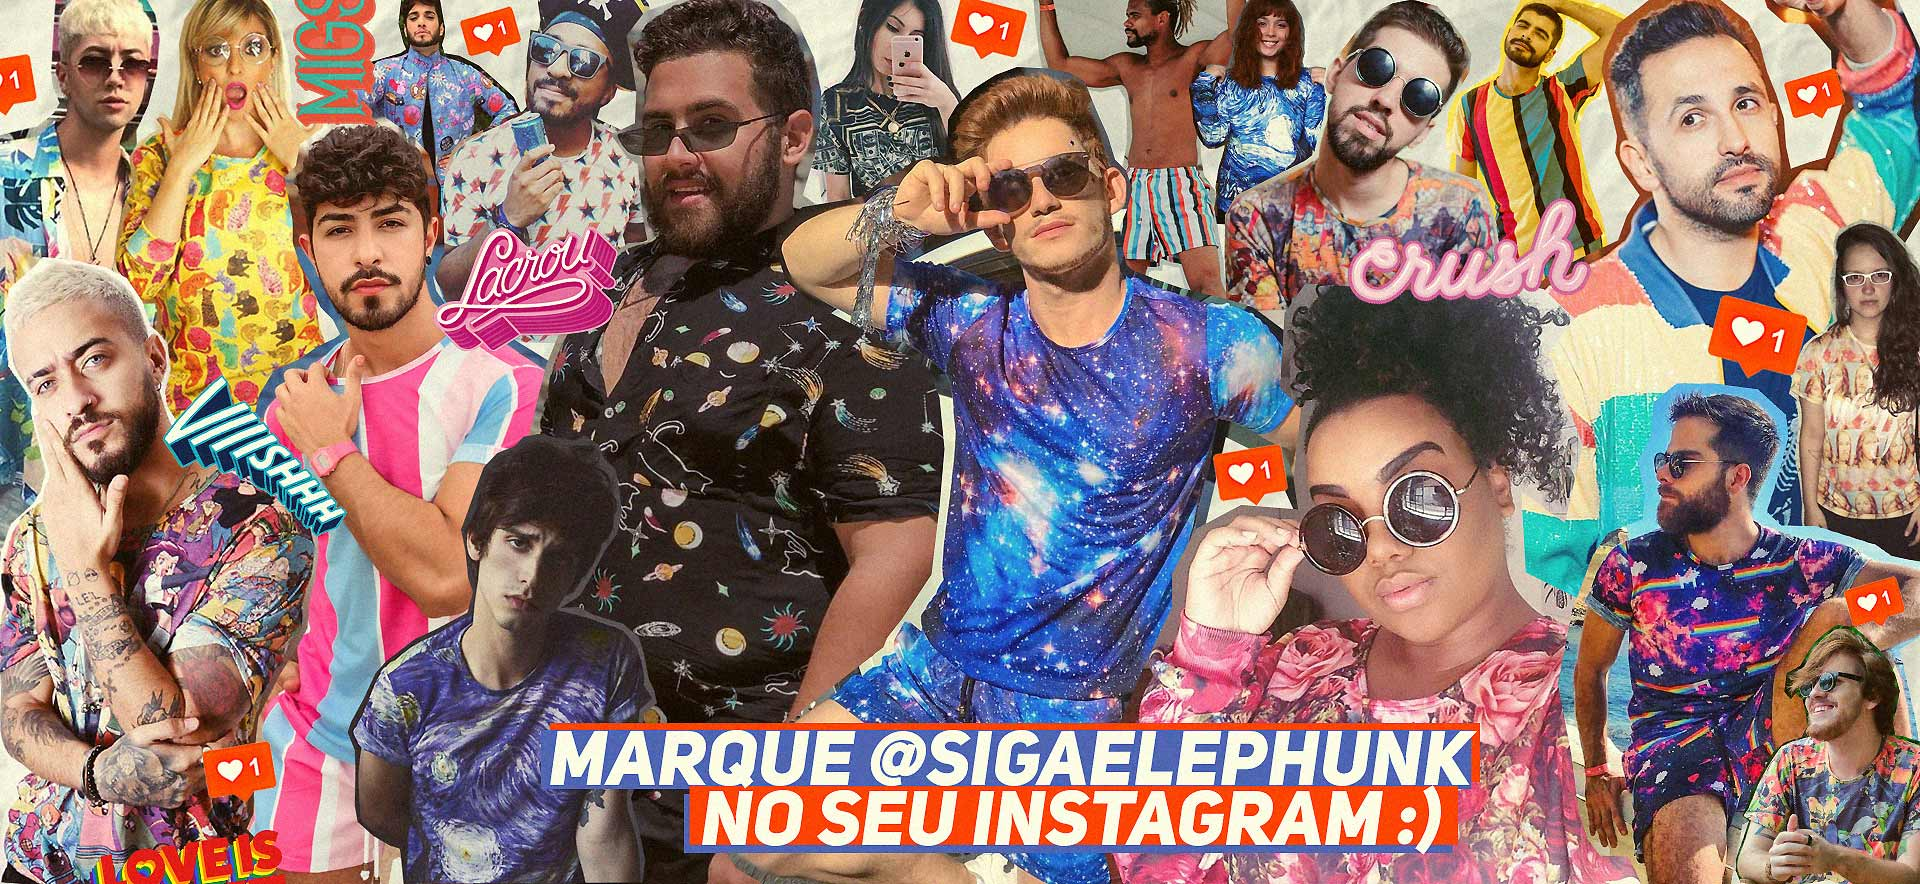 Marque a @sigaelephunk nas fotos do seu Instagram!